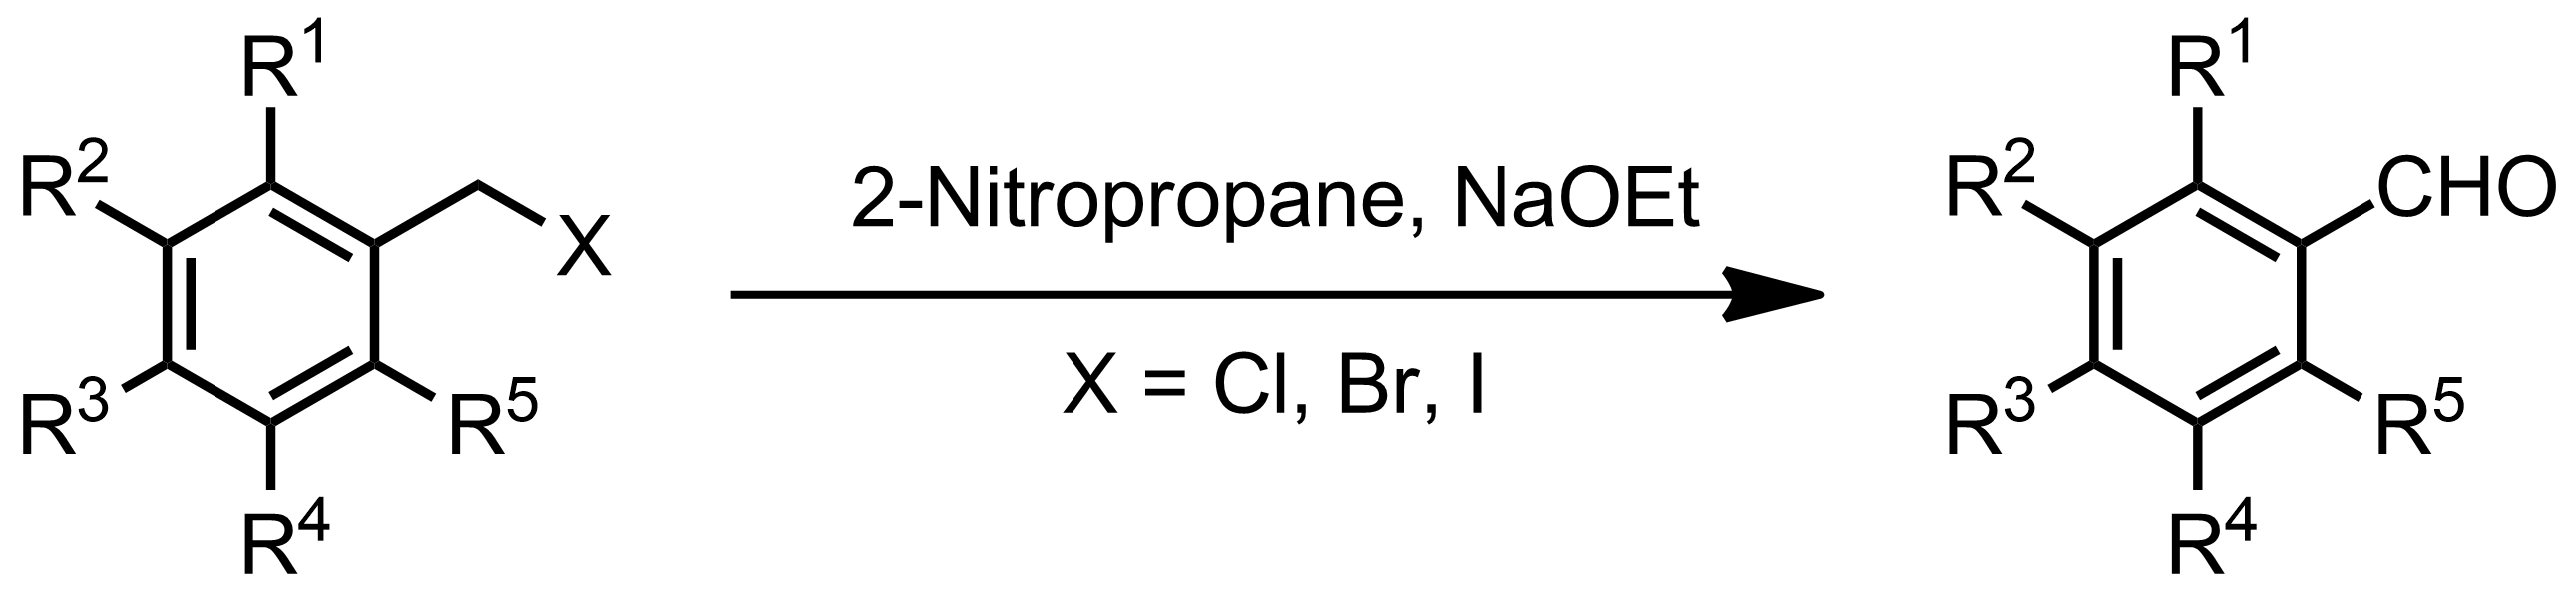 Schematic representation of the Hass-Bender Oxidation.